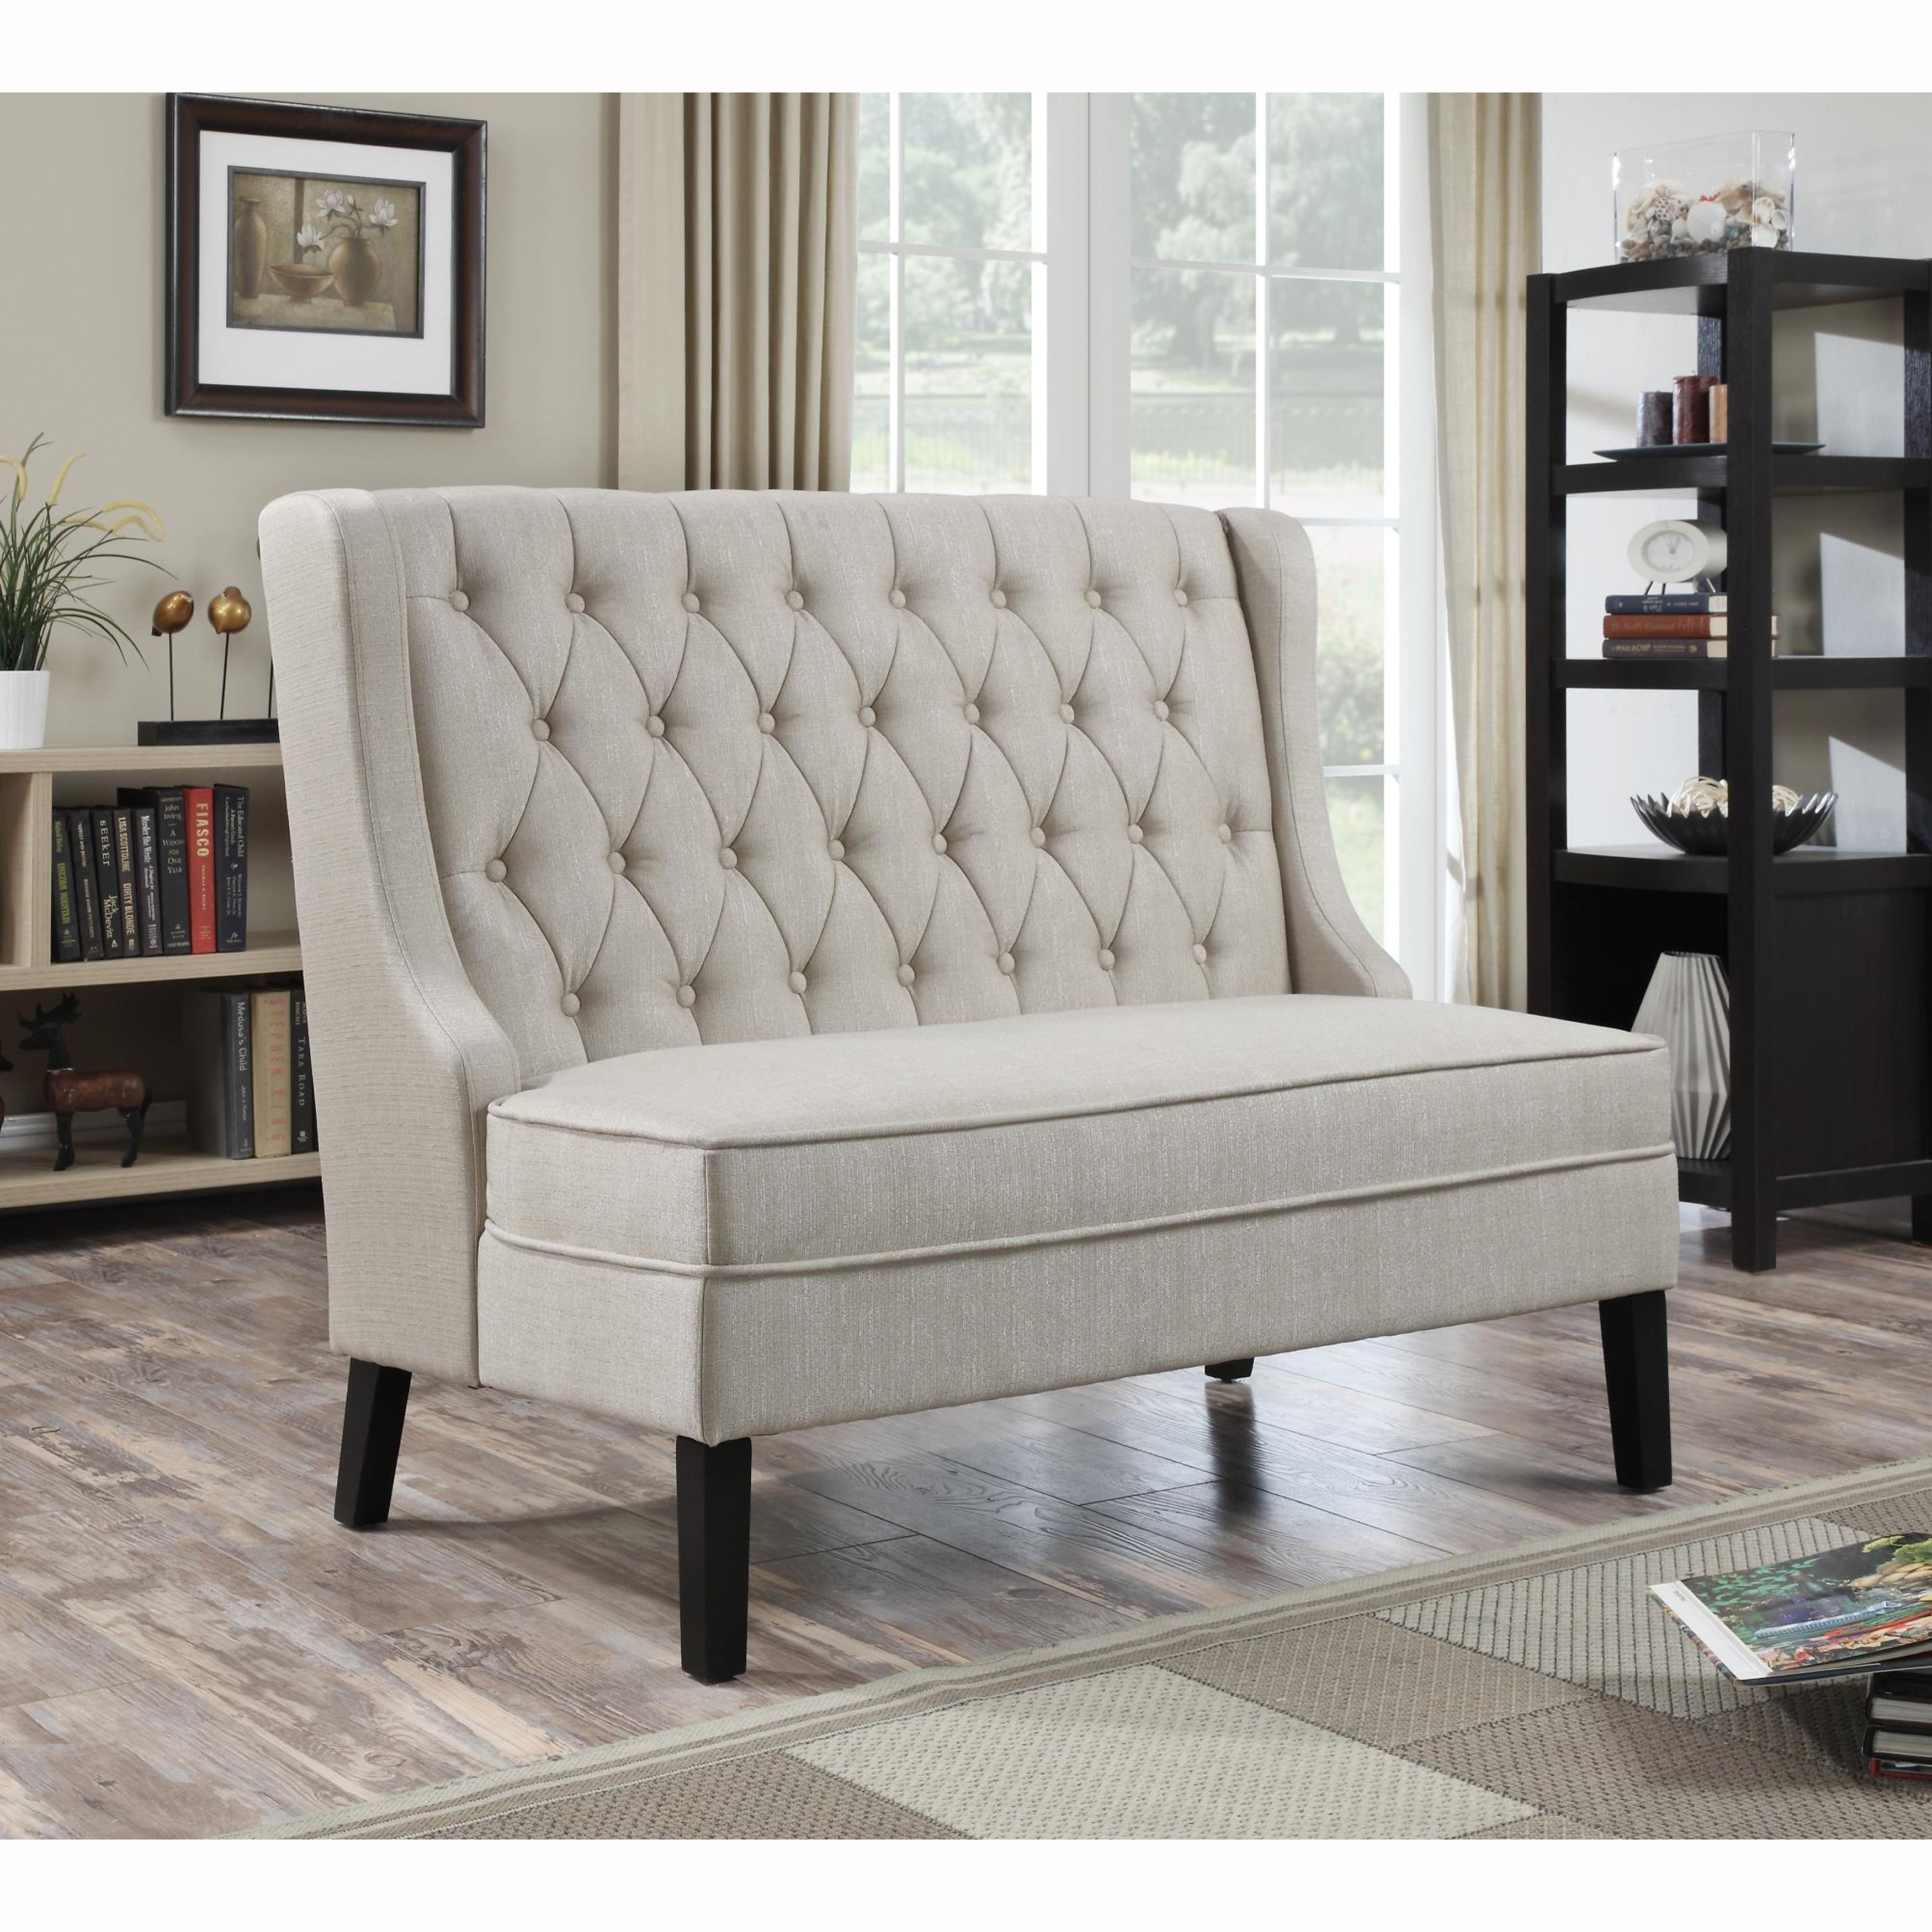 Linen button tufted upholstered banquette bench is for Banquette bench